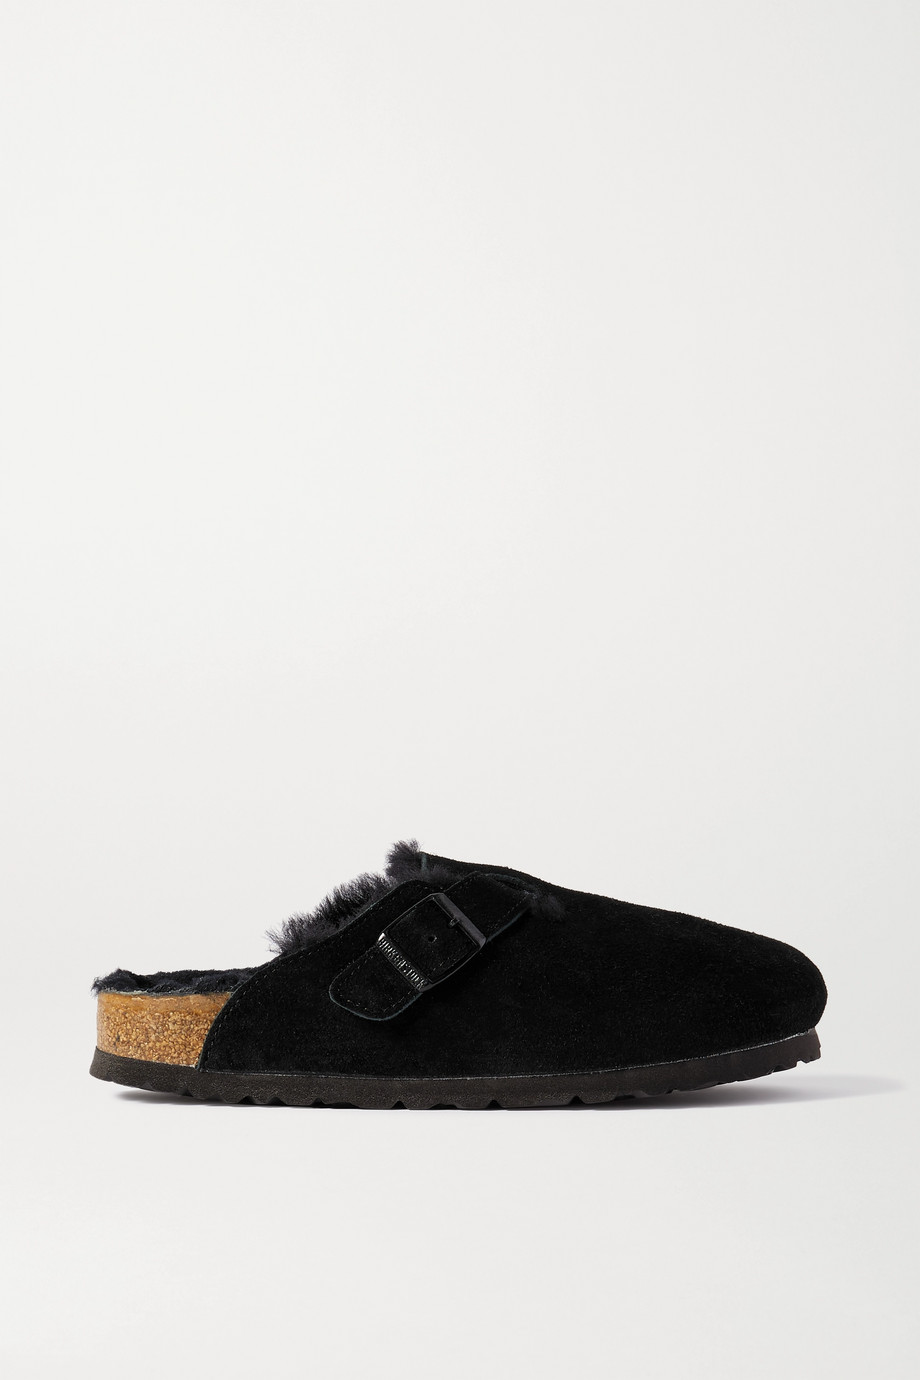 Birkenstock Boston shearling-lined suede slippers